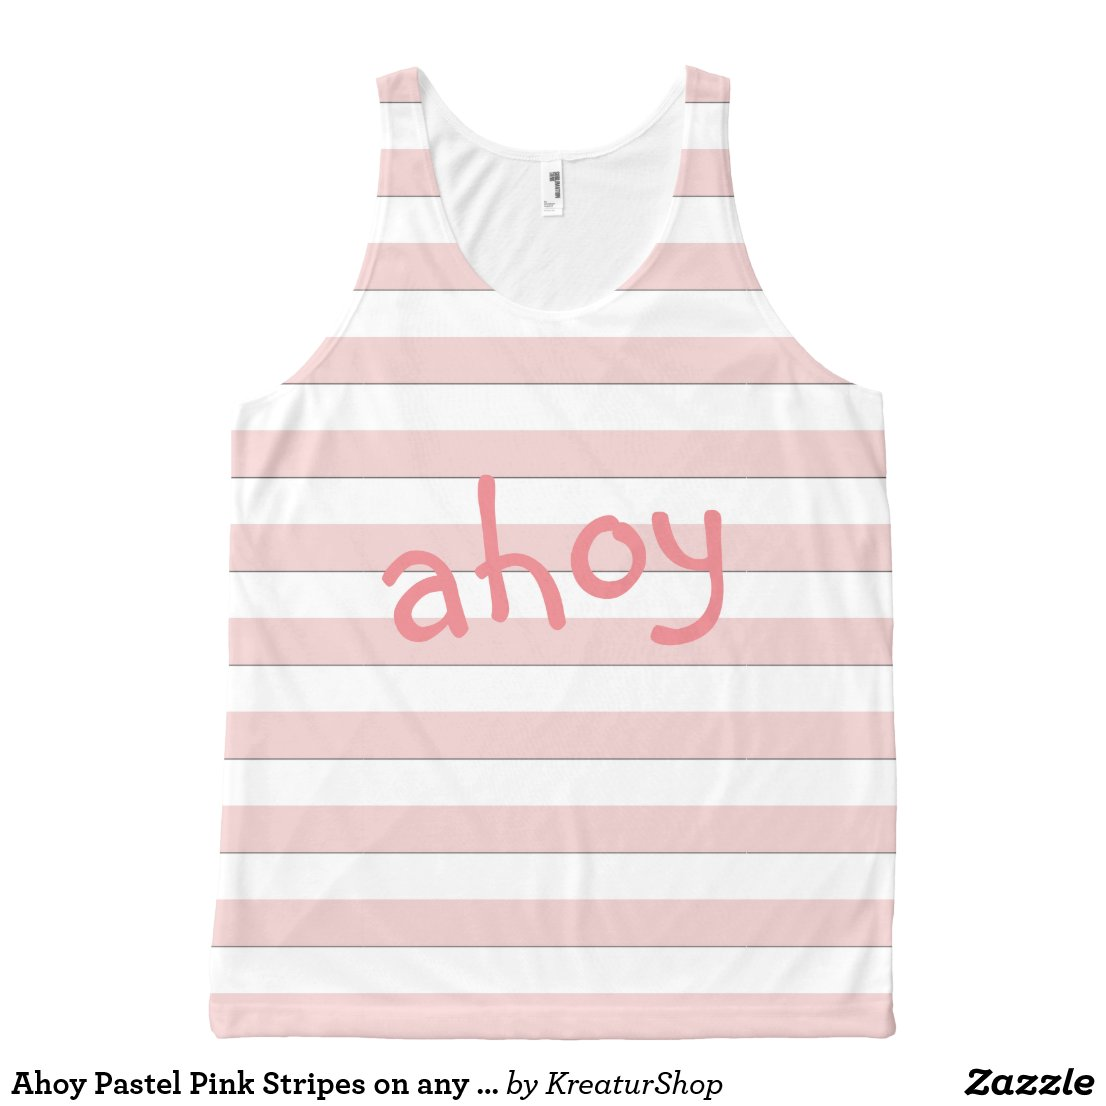 Ahoy Pastel Pink Stripes on any Color any Text